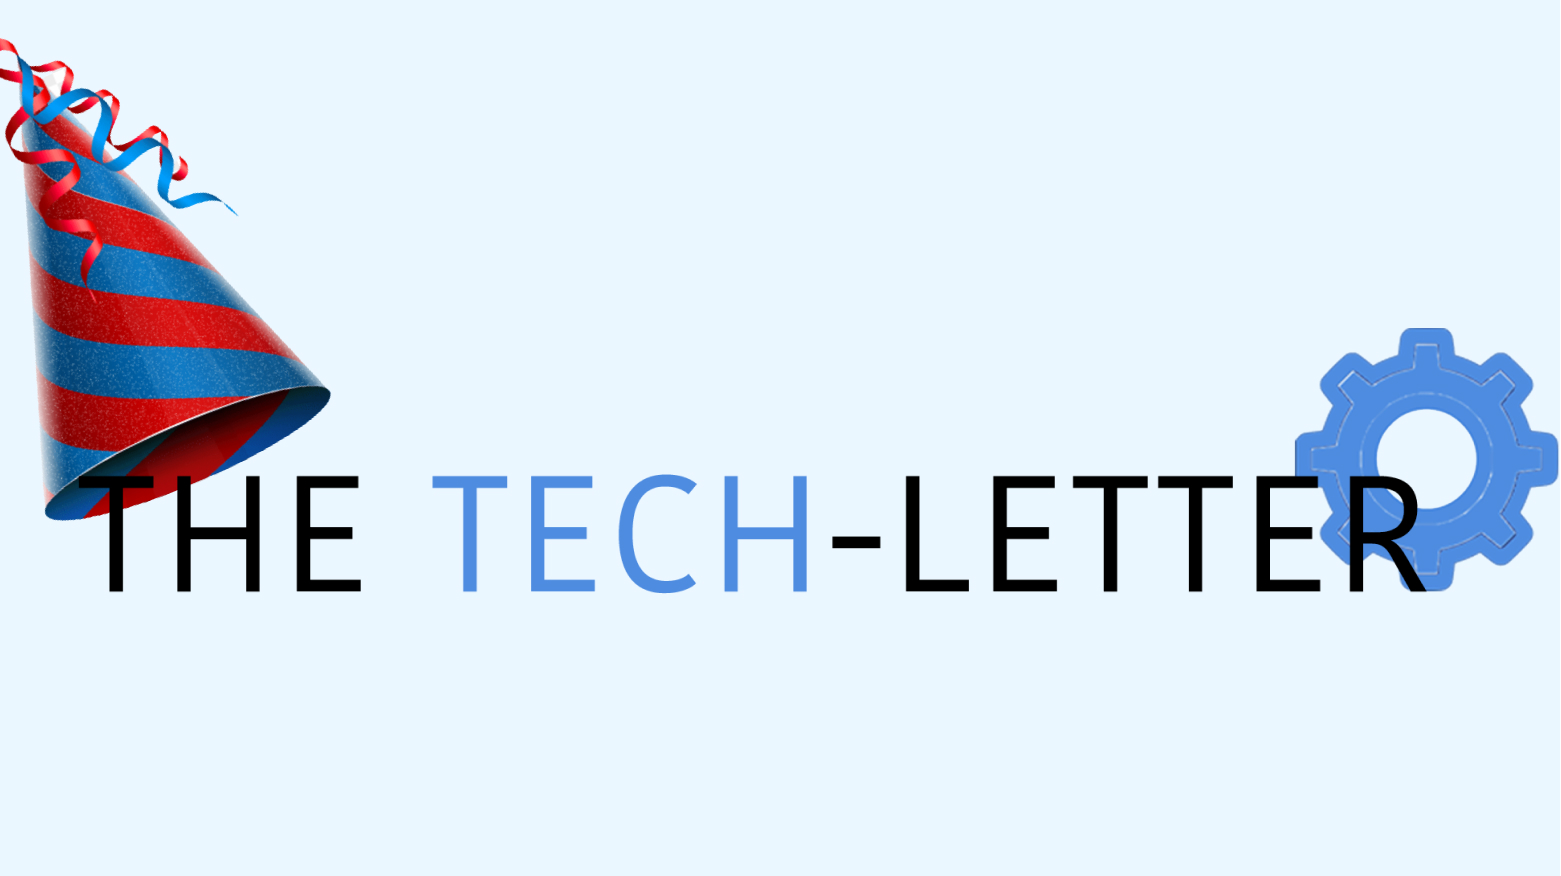 The tech-letter logo with birthday cap